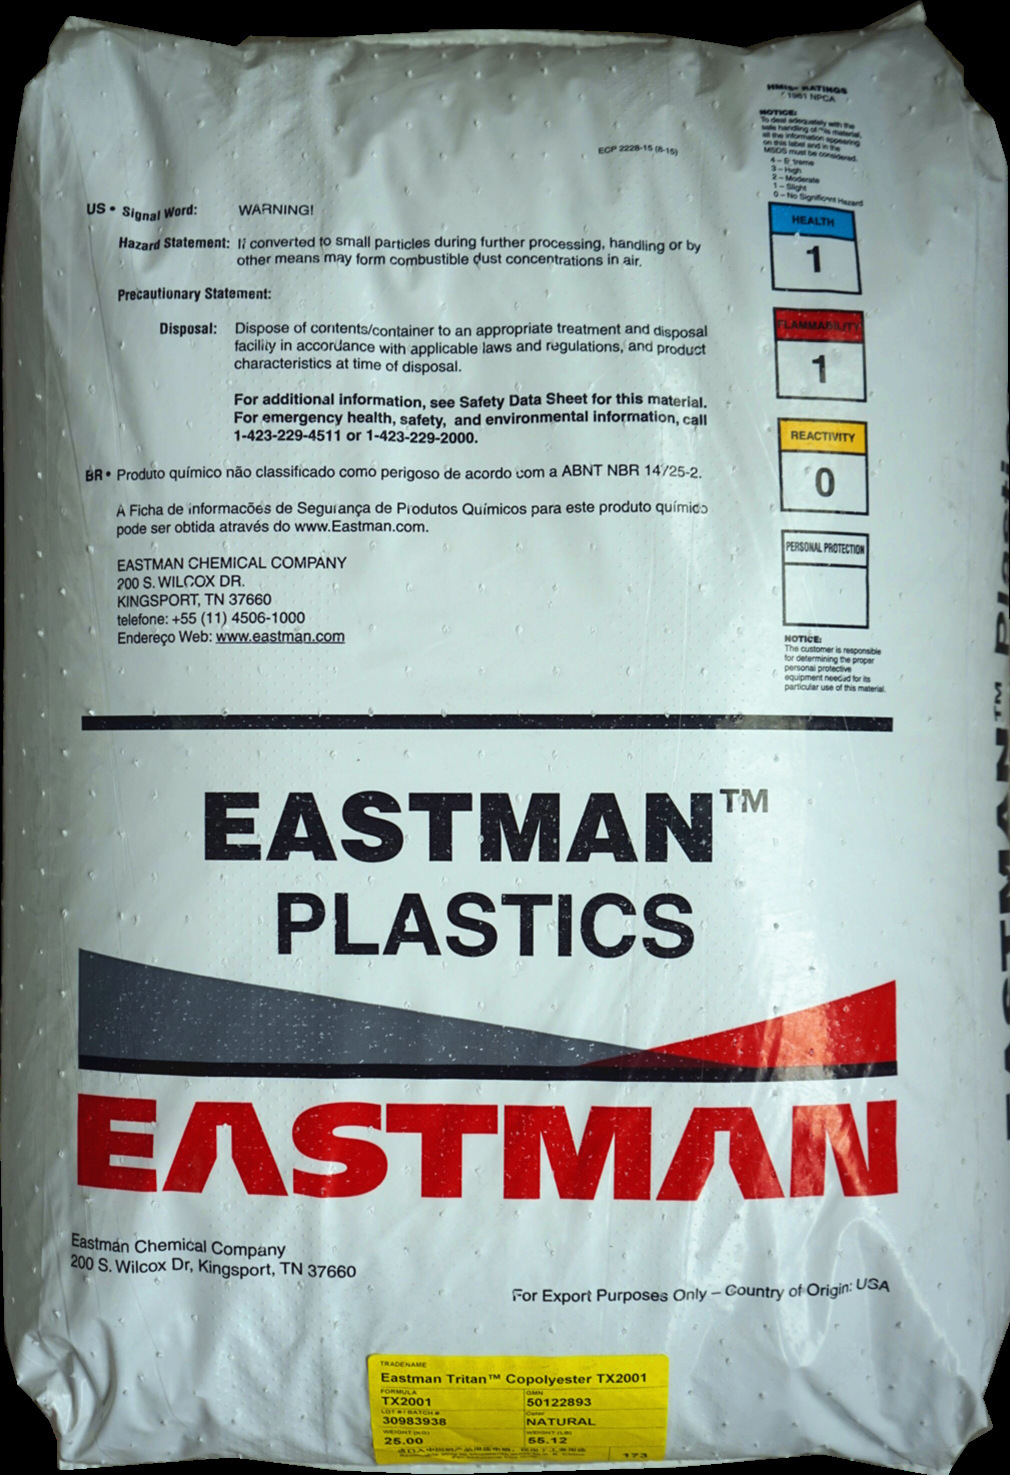 Eastarcopolyester PCTG 5011 伊士曼PCTG 共聚多酯